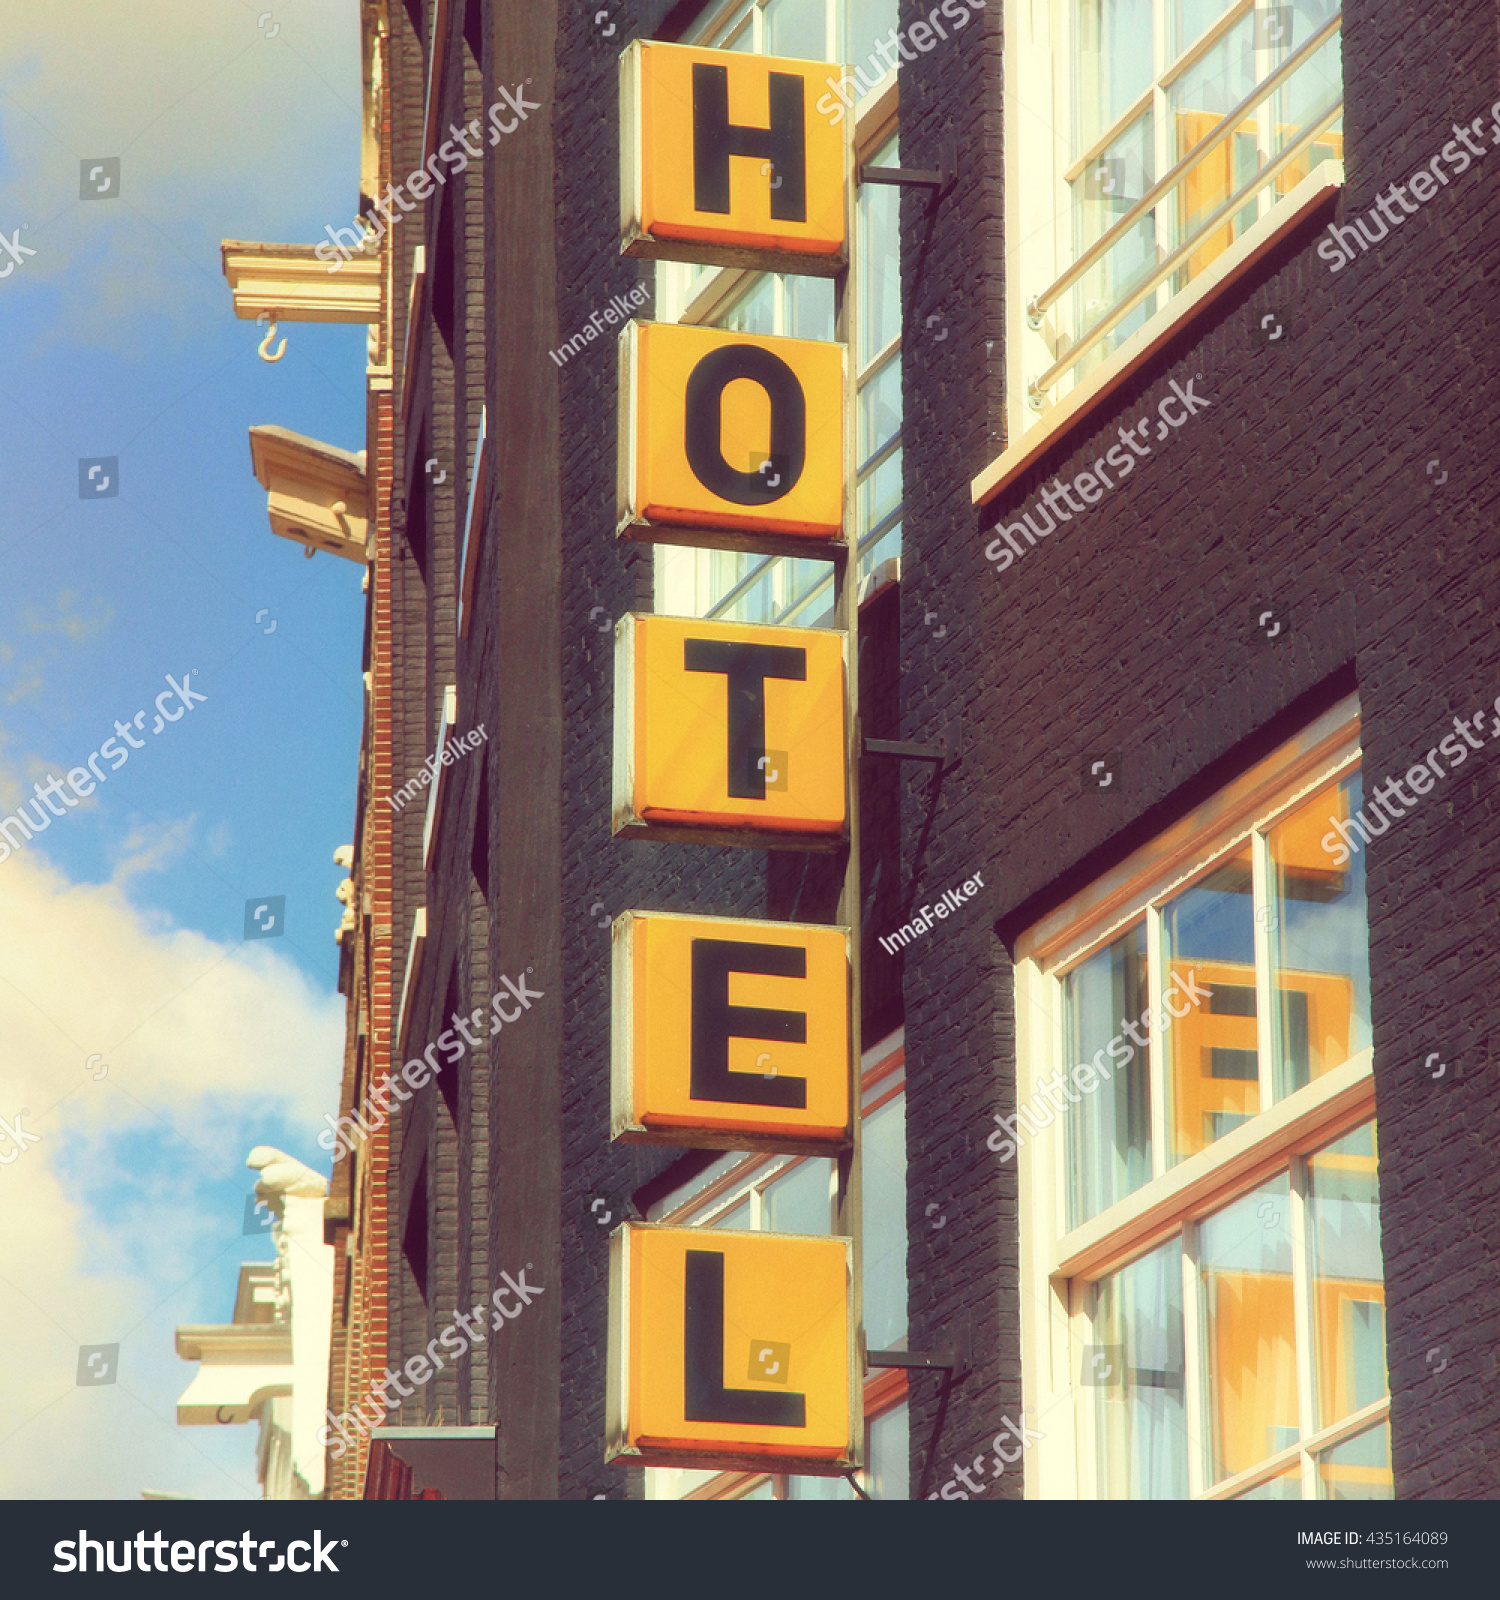 Vertical Yellow Hotel Sign Over The Entrance To Brick Building In Amsterdam Vintage Toned